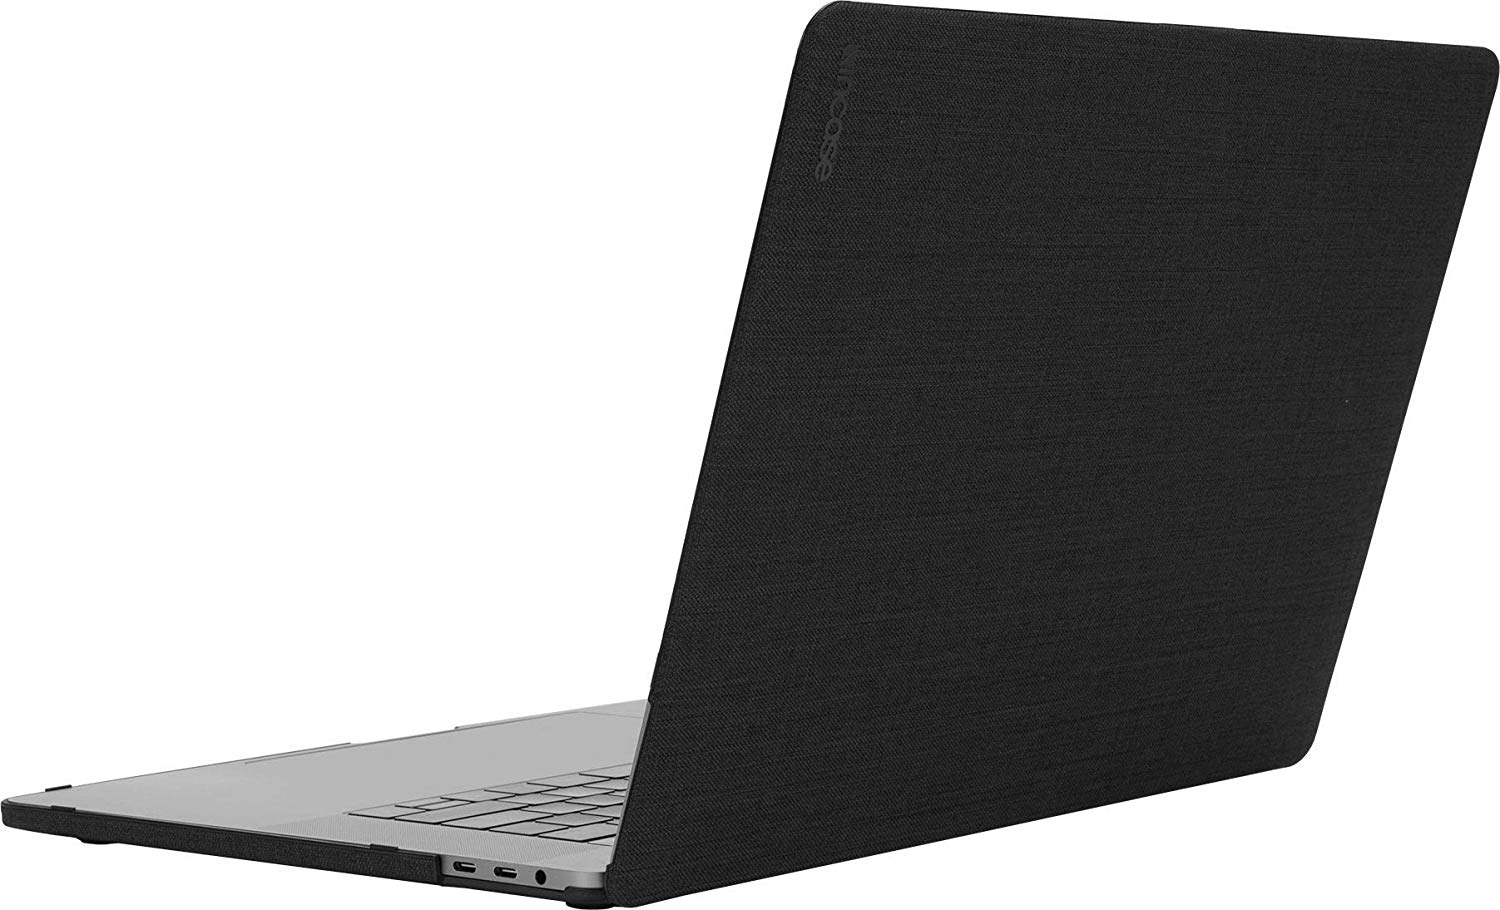 Incase - Hardshell Case for 13.3 Inch Apple MacBook Pro with Touch Bar - Graphite